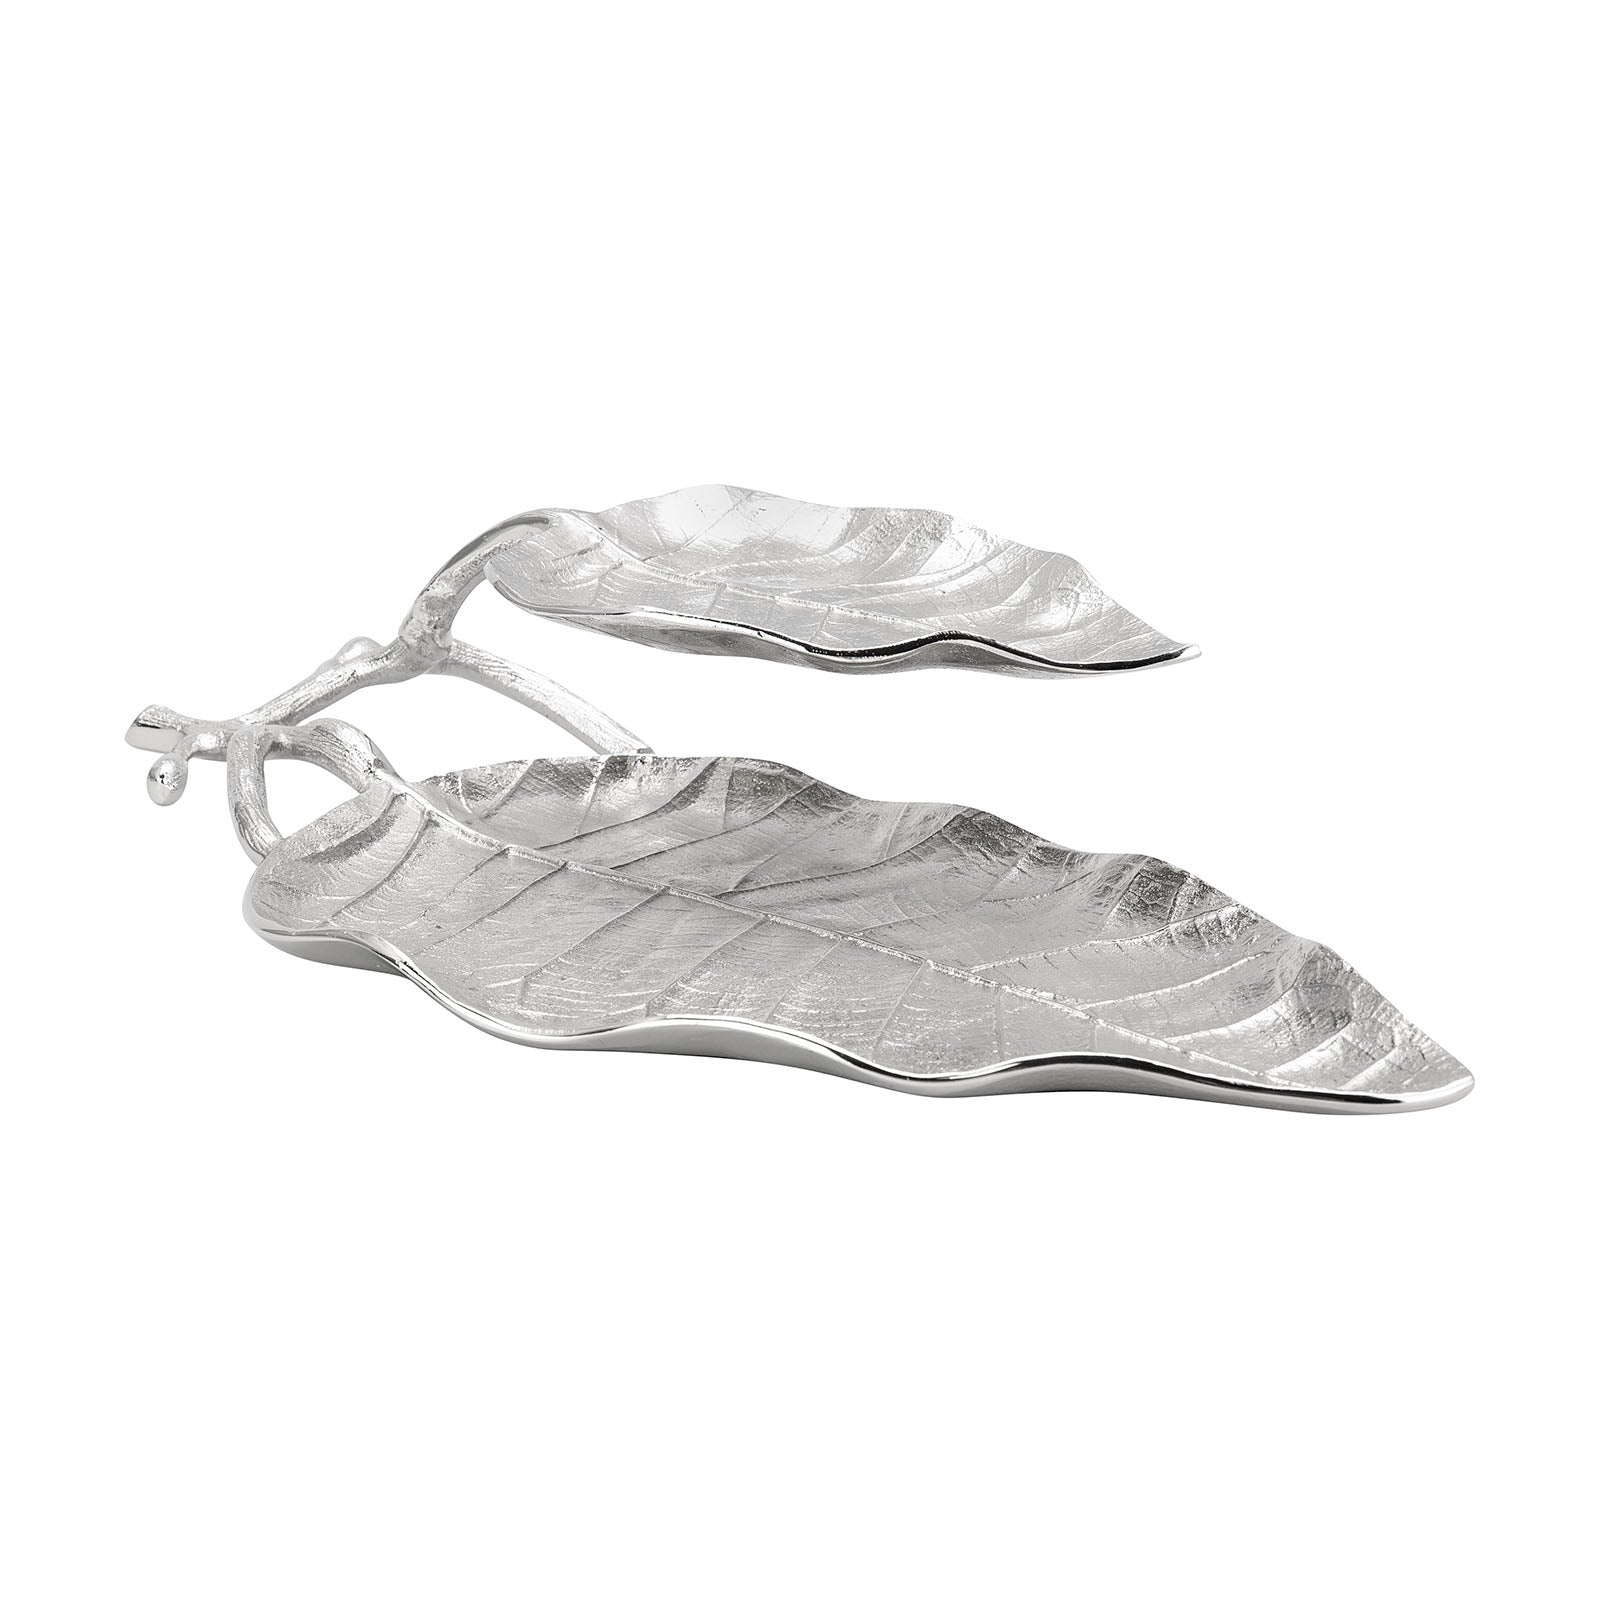 2 Layer Leaf Plate 26x45 cm  153.19.01.1188 - ebarza